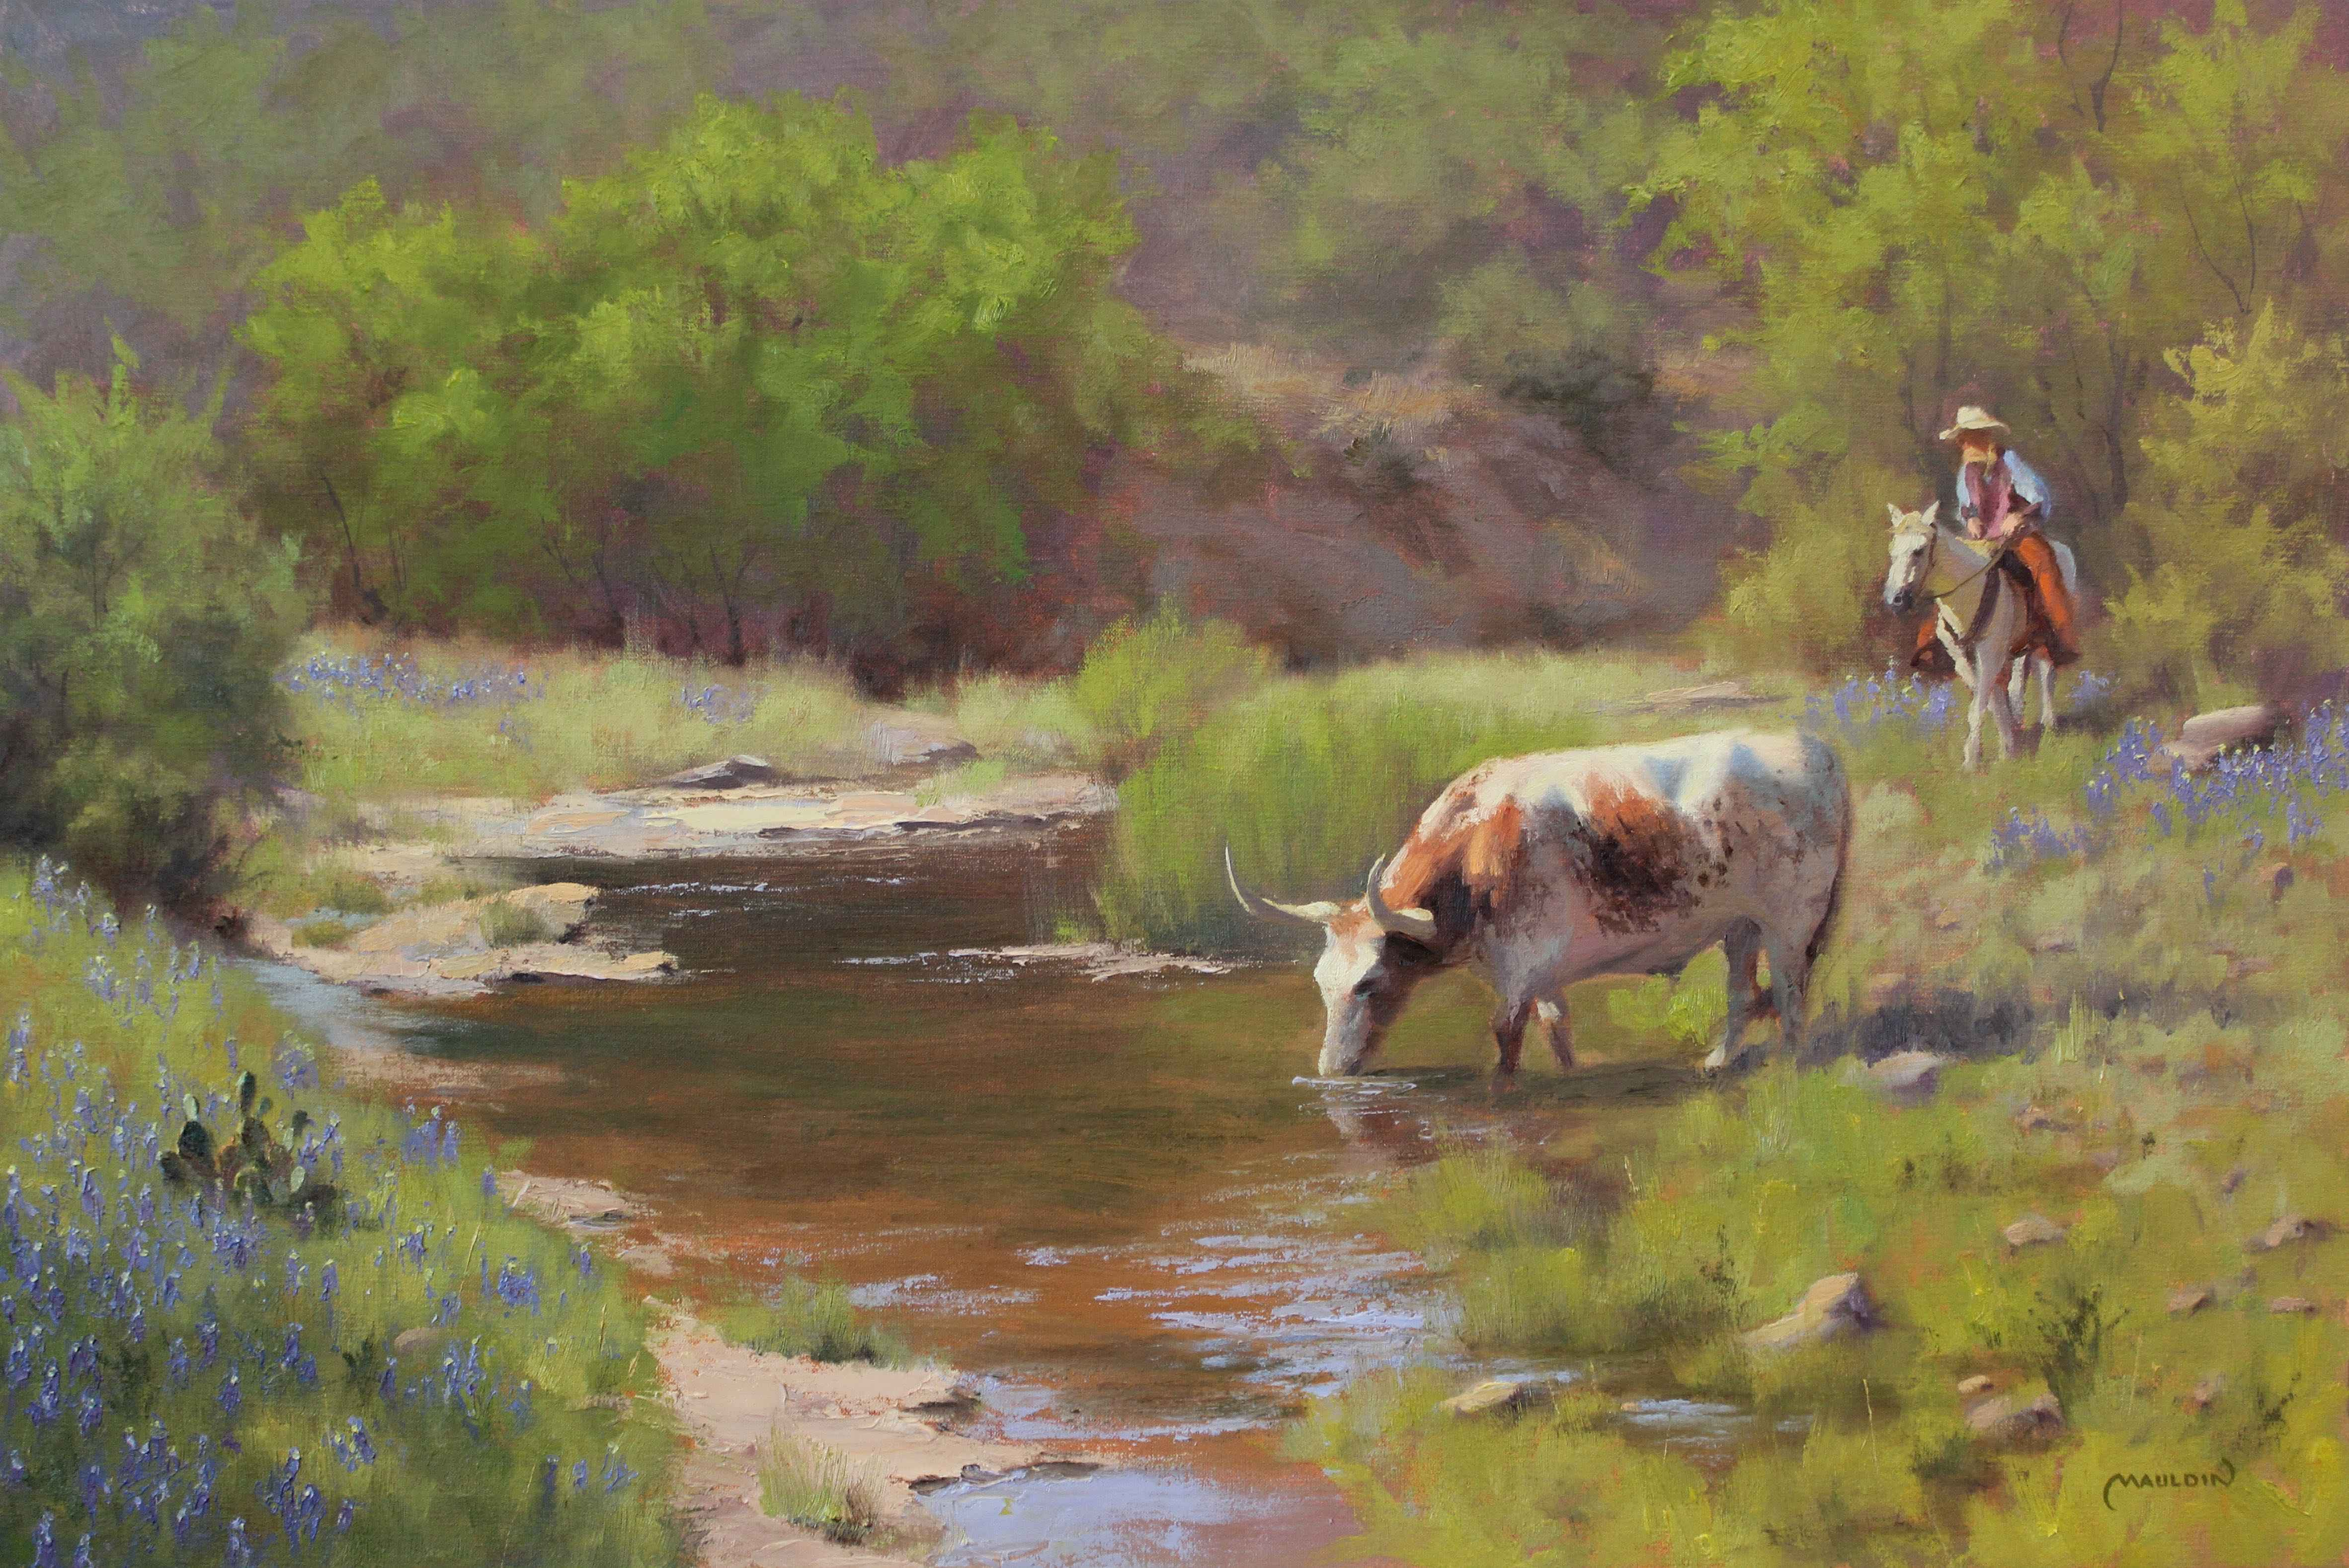 There You Are by  Chuck Mauldin - Masterpiece Online